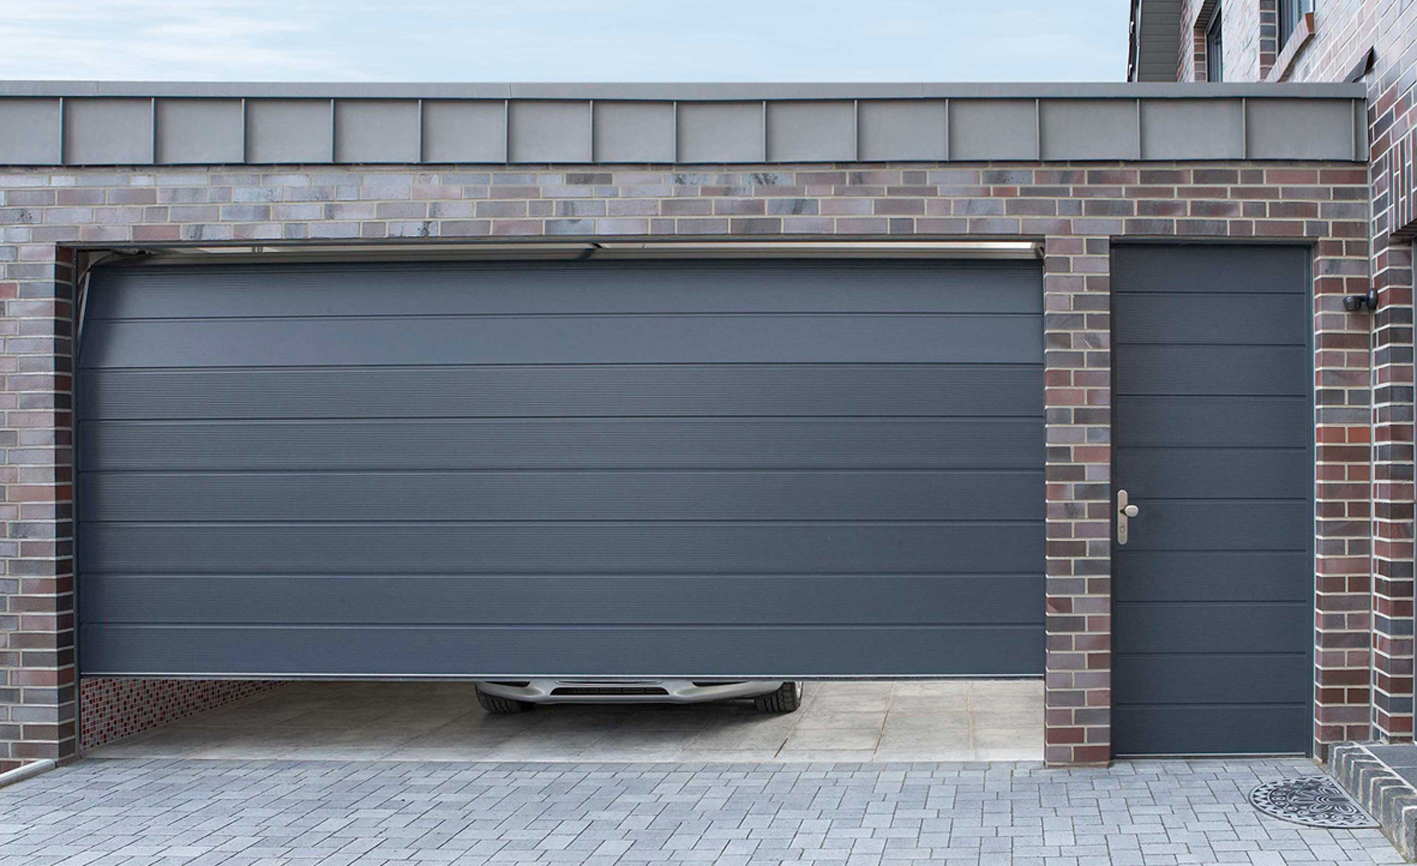 If You Use Your Garage As An Access To Your House Of Rarely Put Your  Vehicle In The Garage Then A Wicket Door Could Be Of Great Benefit To You  And Others.